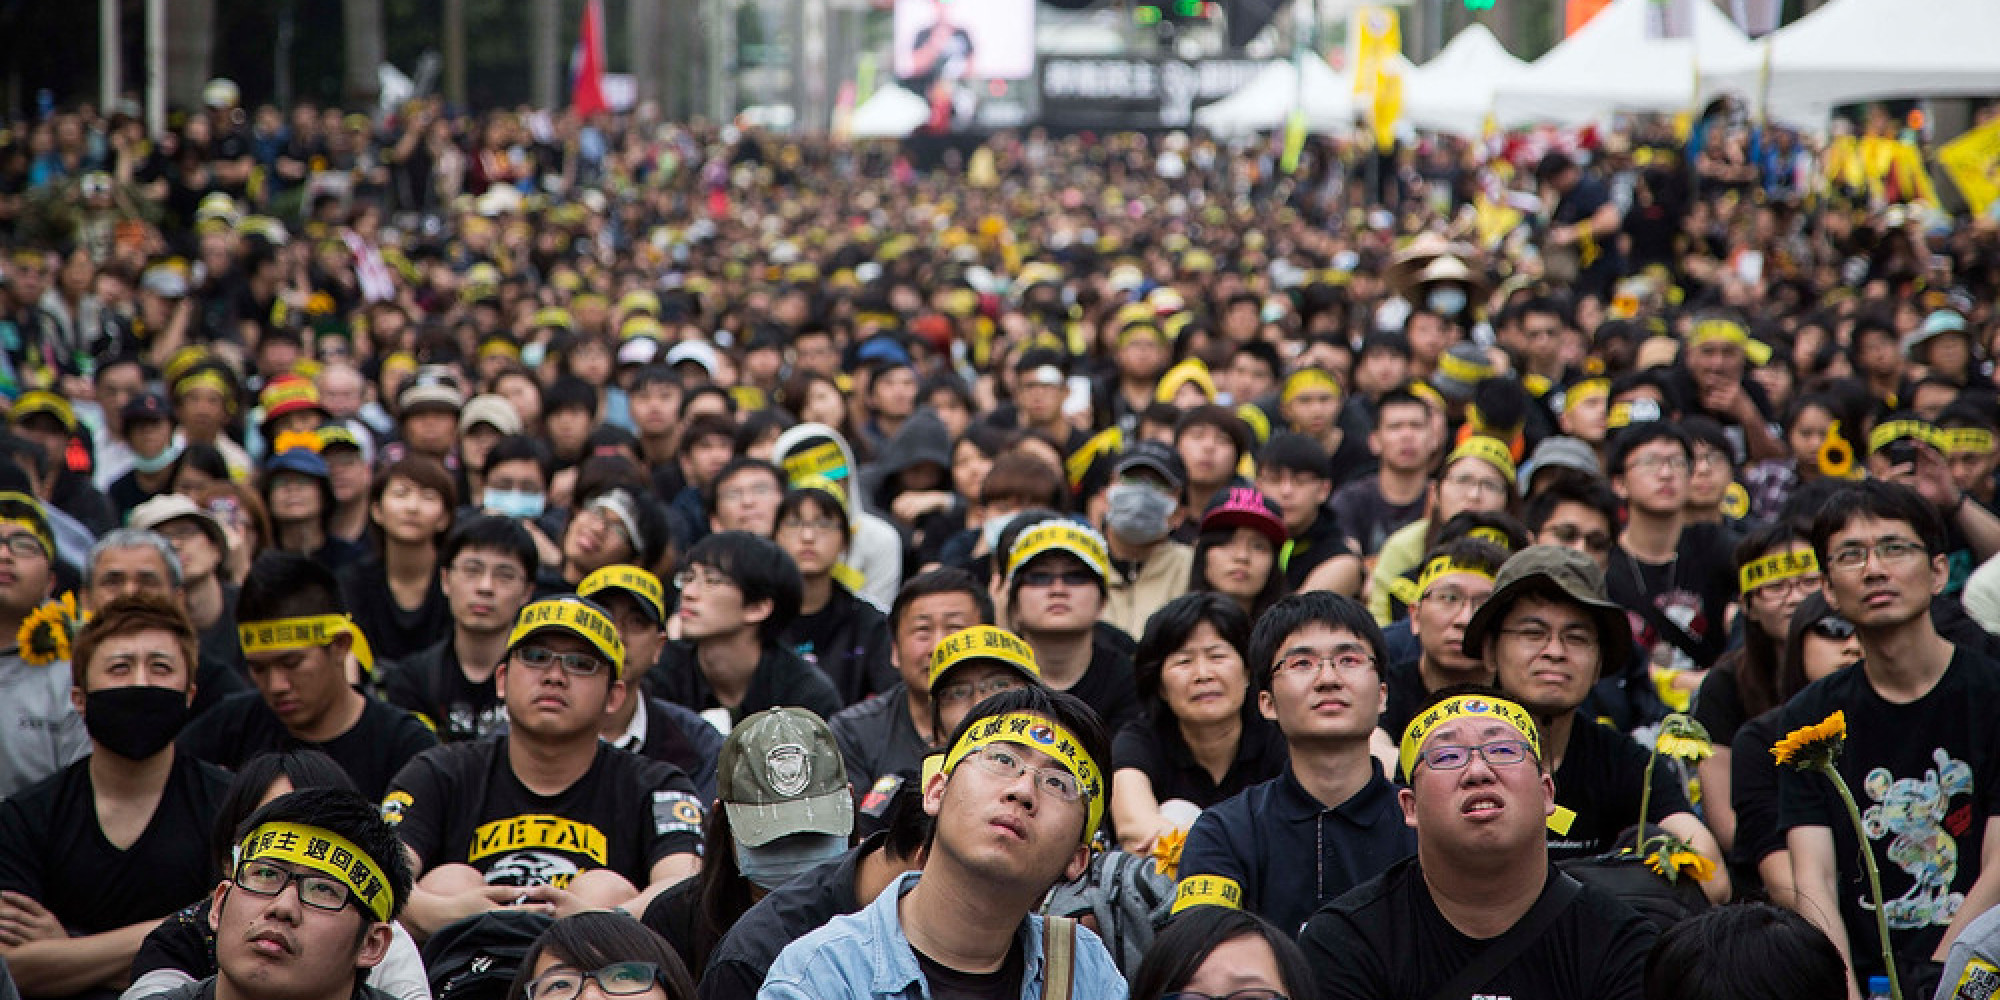 political movement in hk Hong kong has been in slow-burn political crisis for many years, but after the umbrella movement, the injustice and illegality of its formal political system have become more acute and led to .